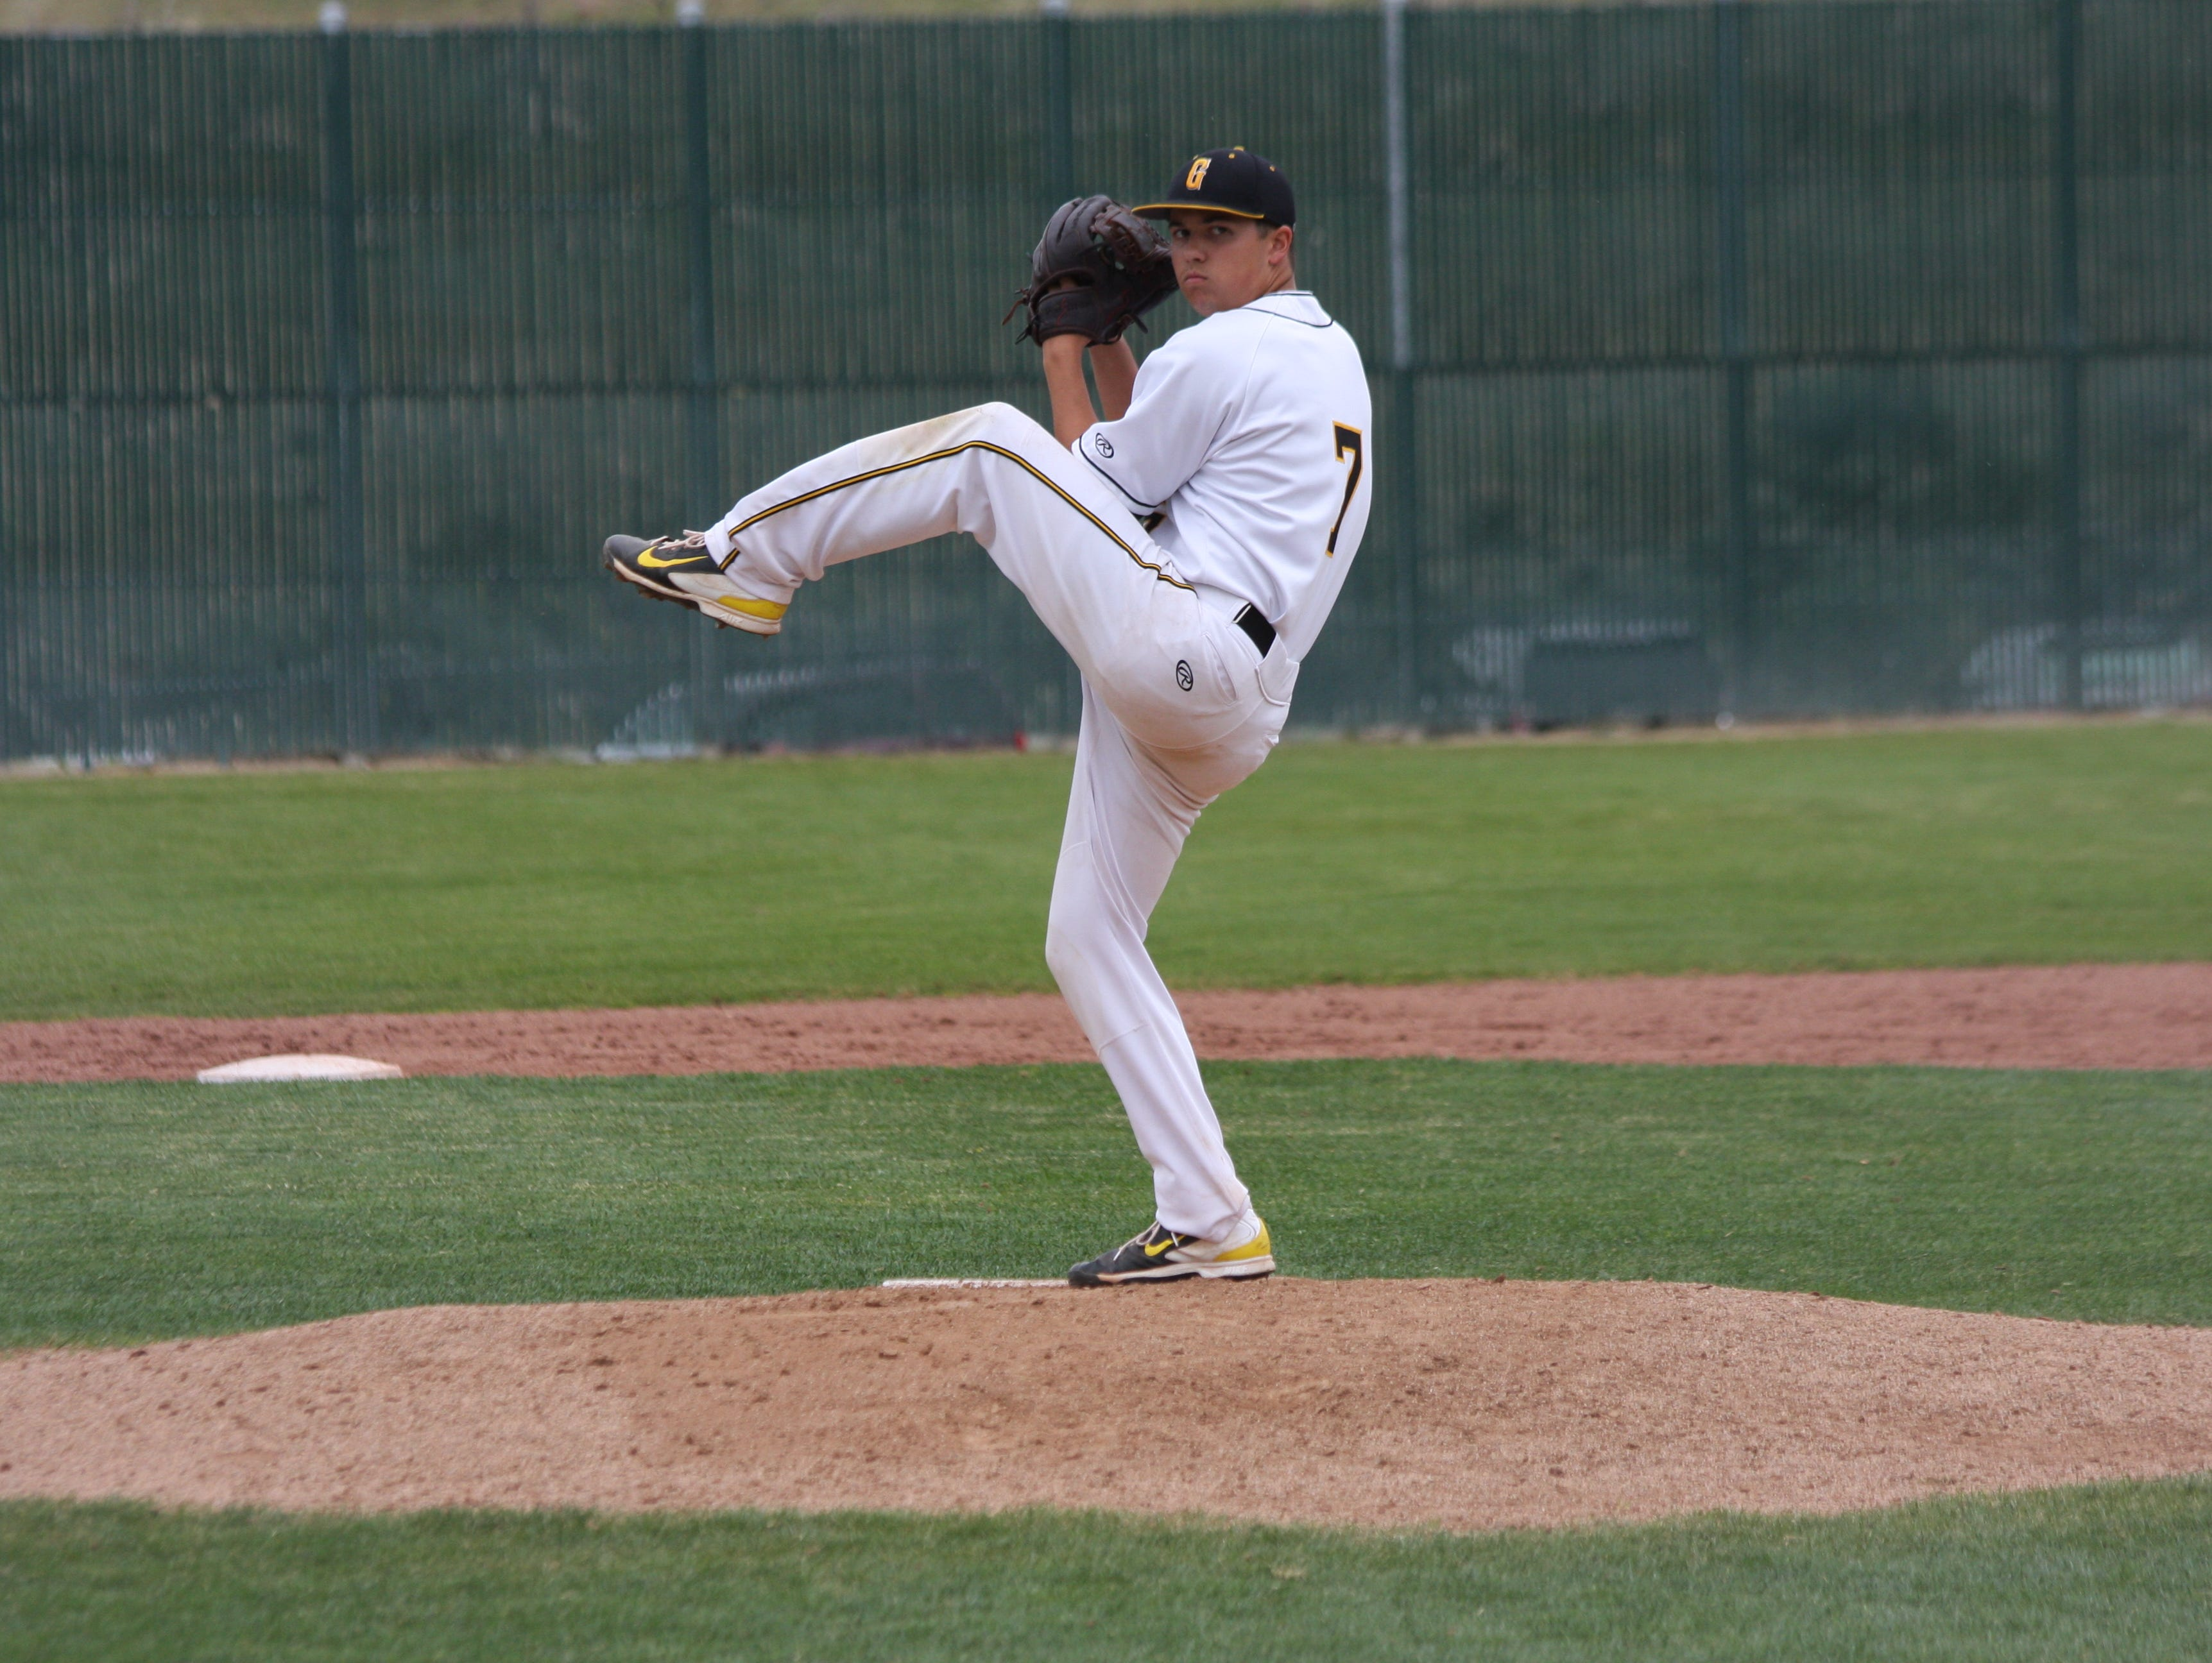 Galena senior Dawson Campos delivers a pitch during Saturday's win over North Valleys